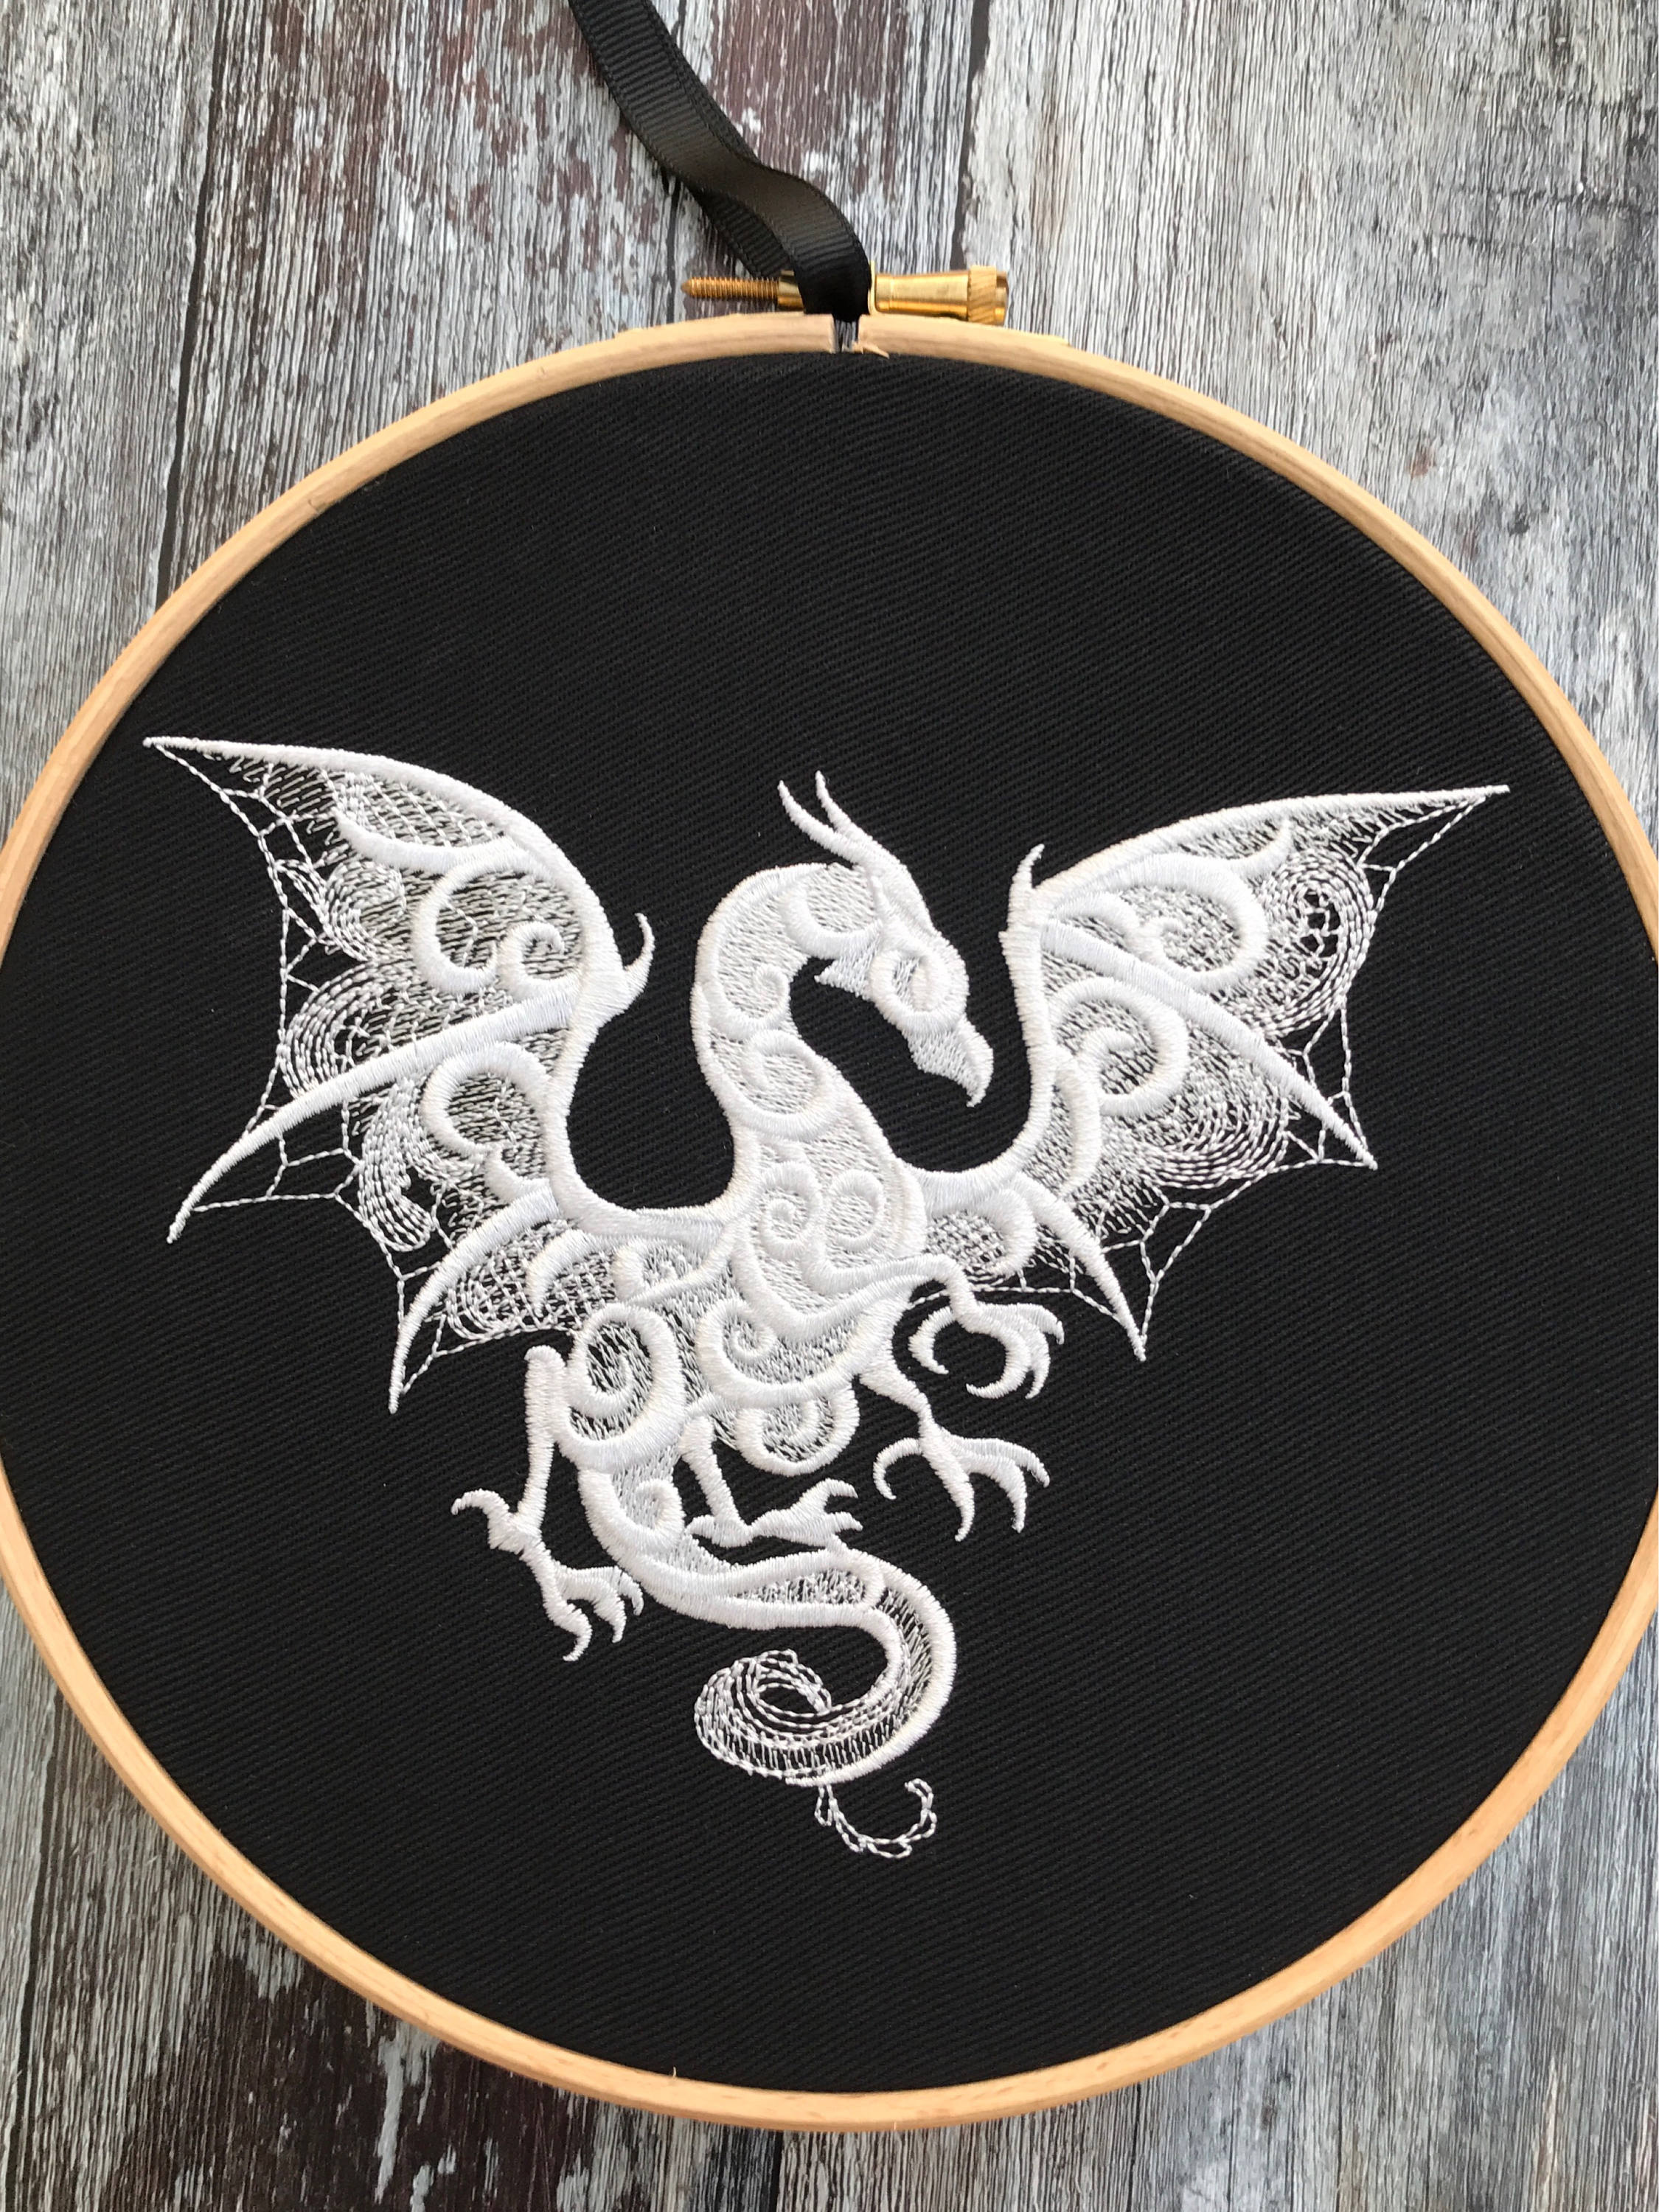 Dragon white lace effect, Embroidery hoop art